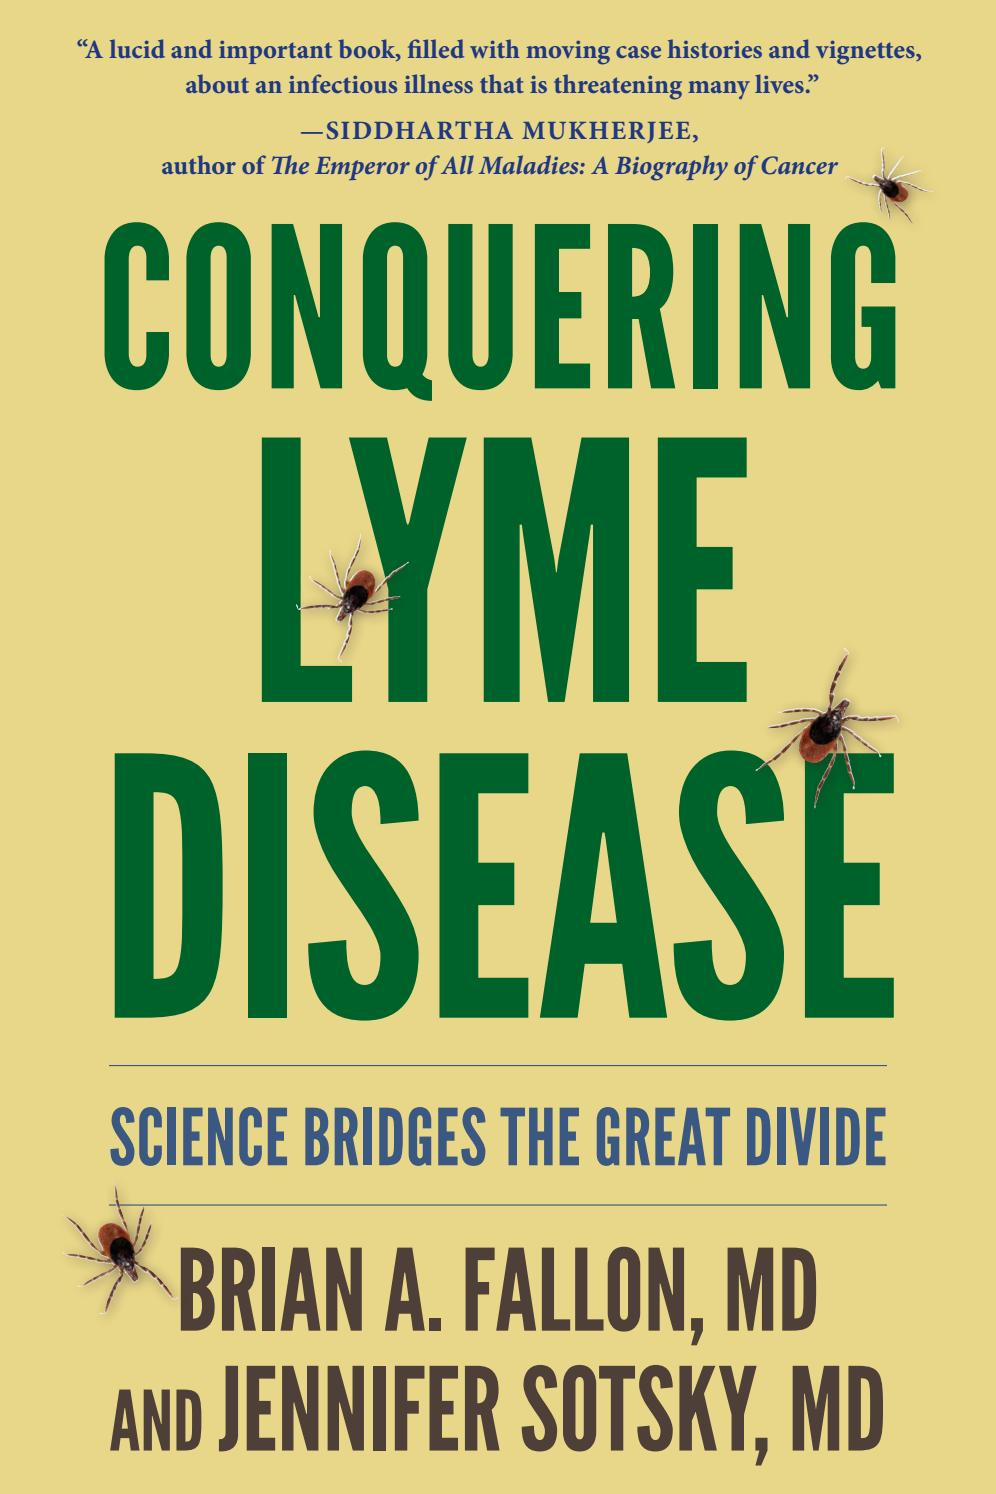 Conquering Lyme Disease, by Brian A  Fallon, MD, and